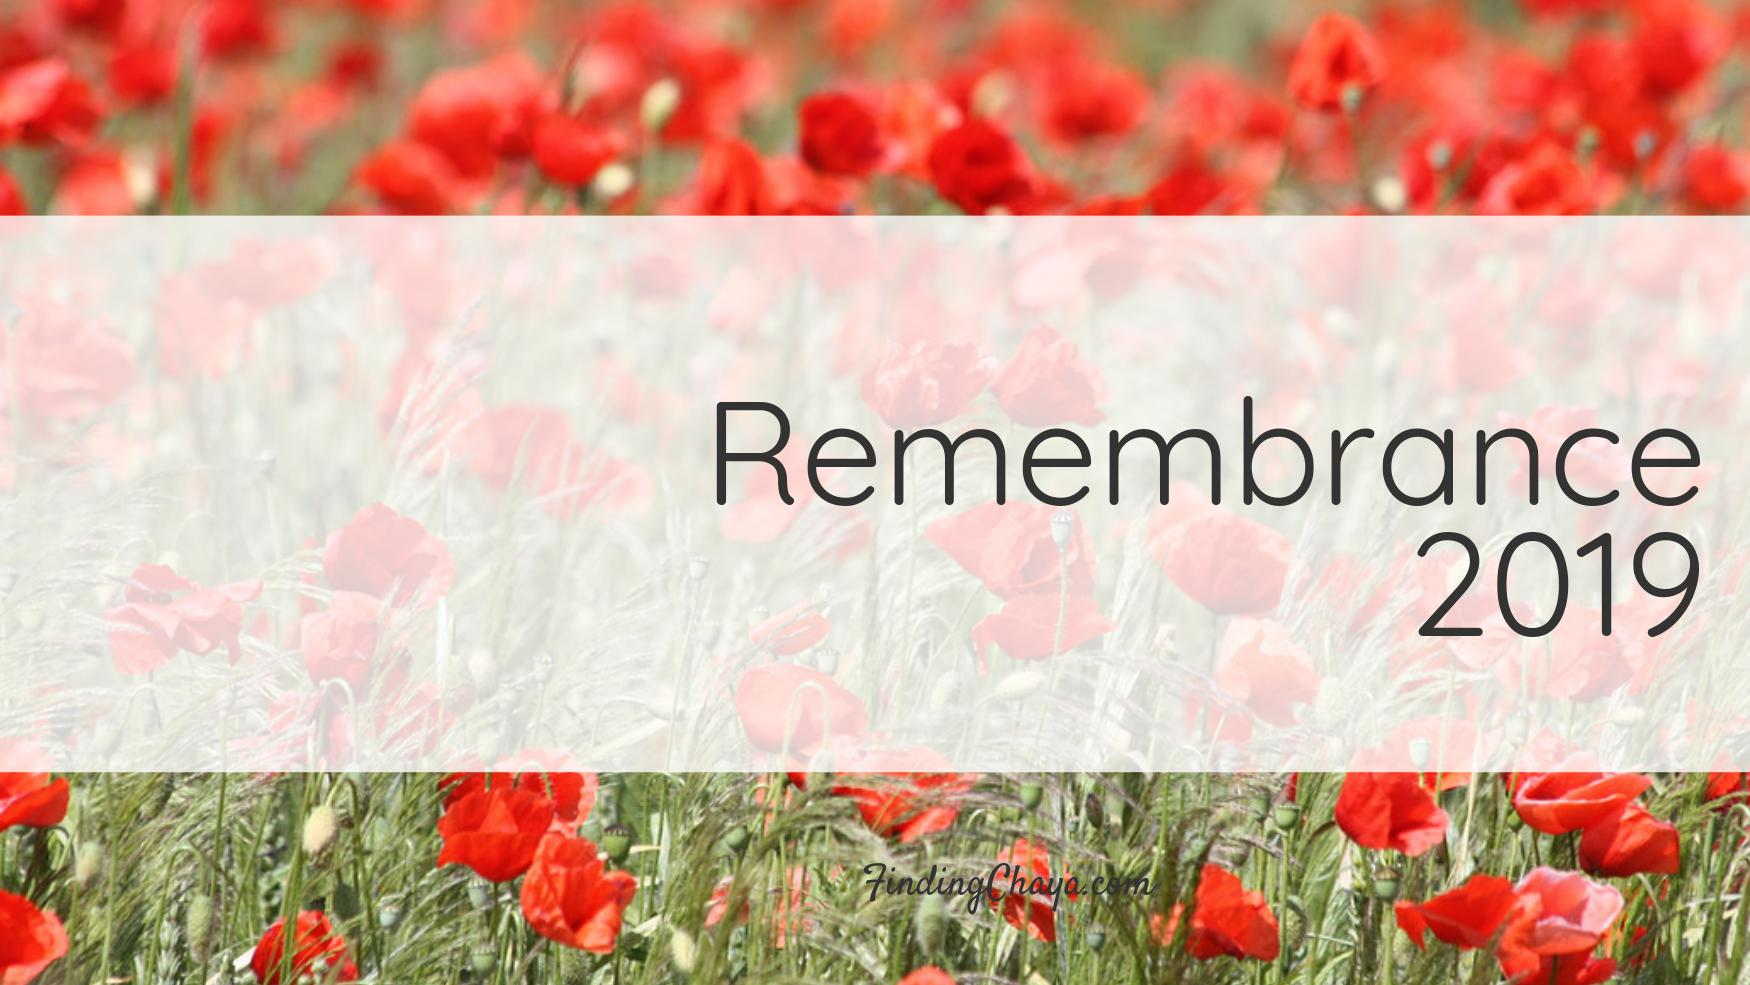 Remembrance 2019